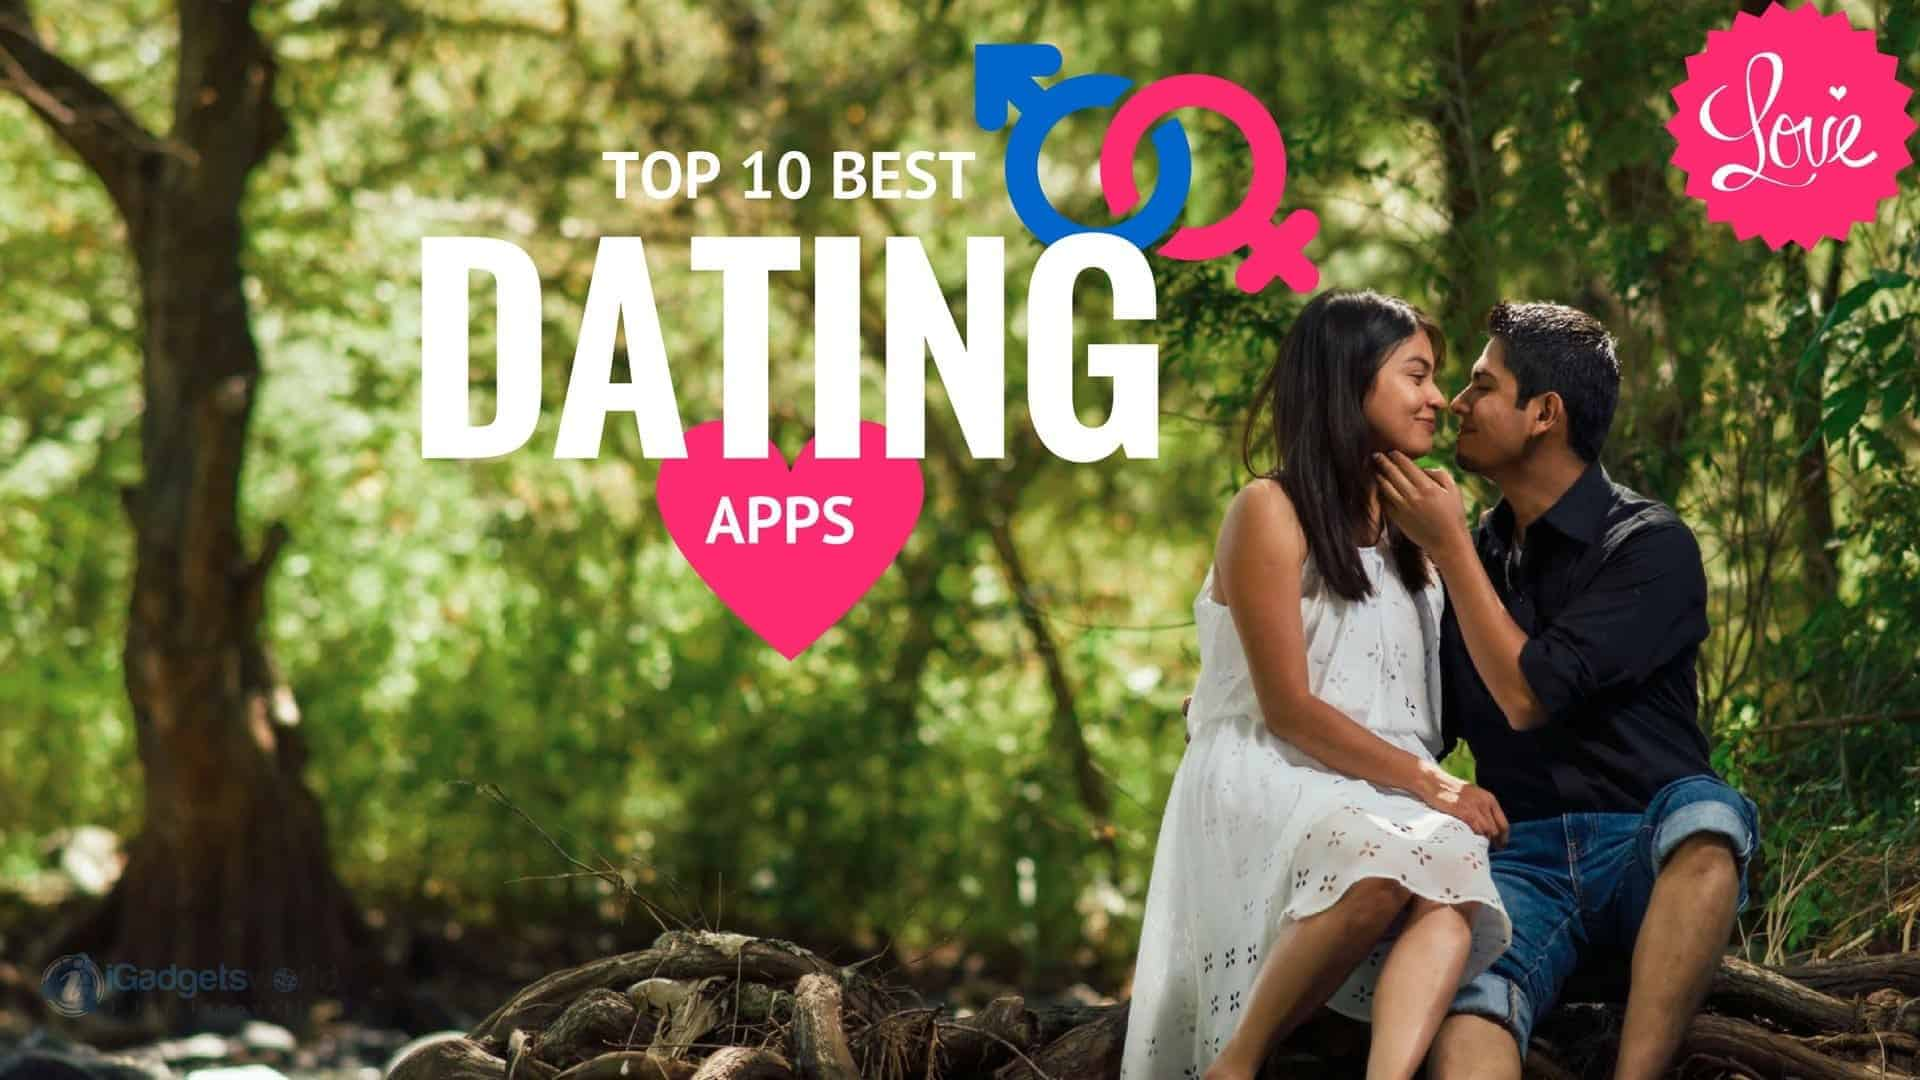 Top international dating apps